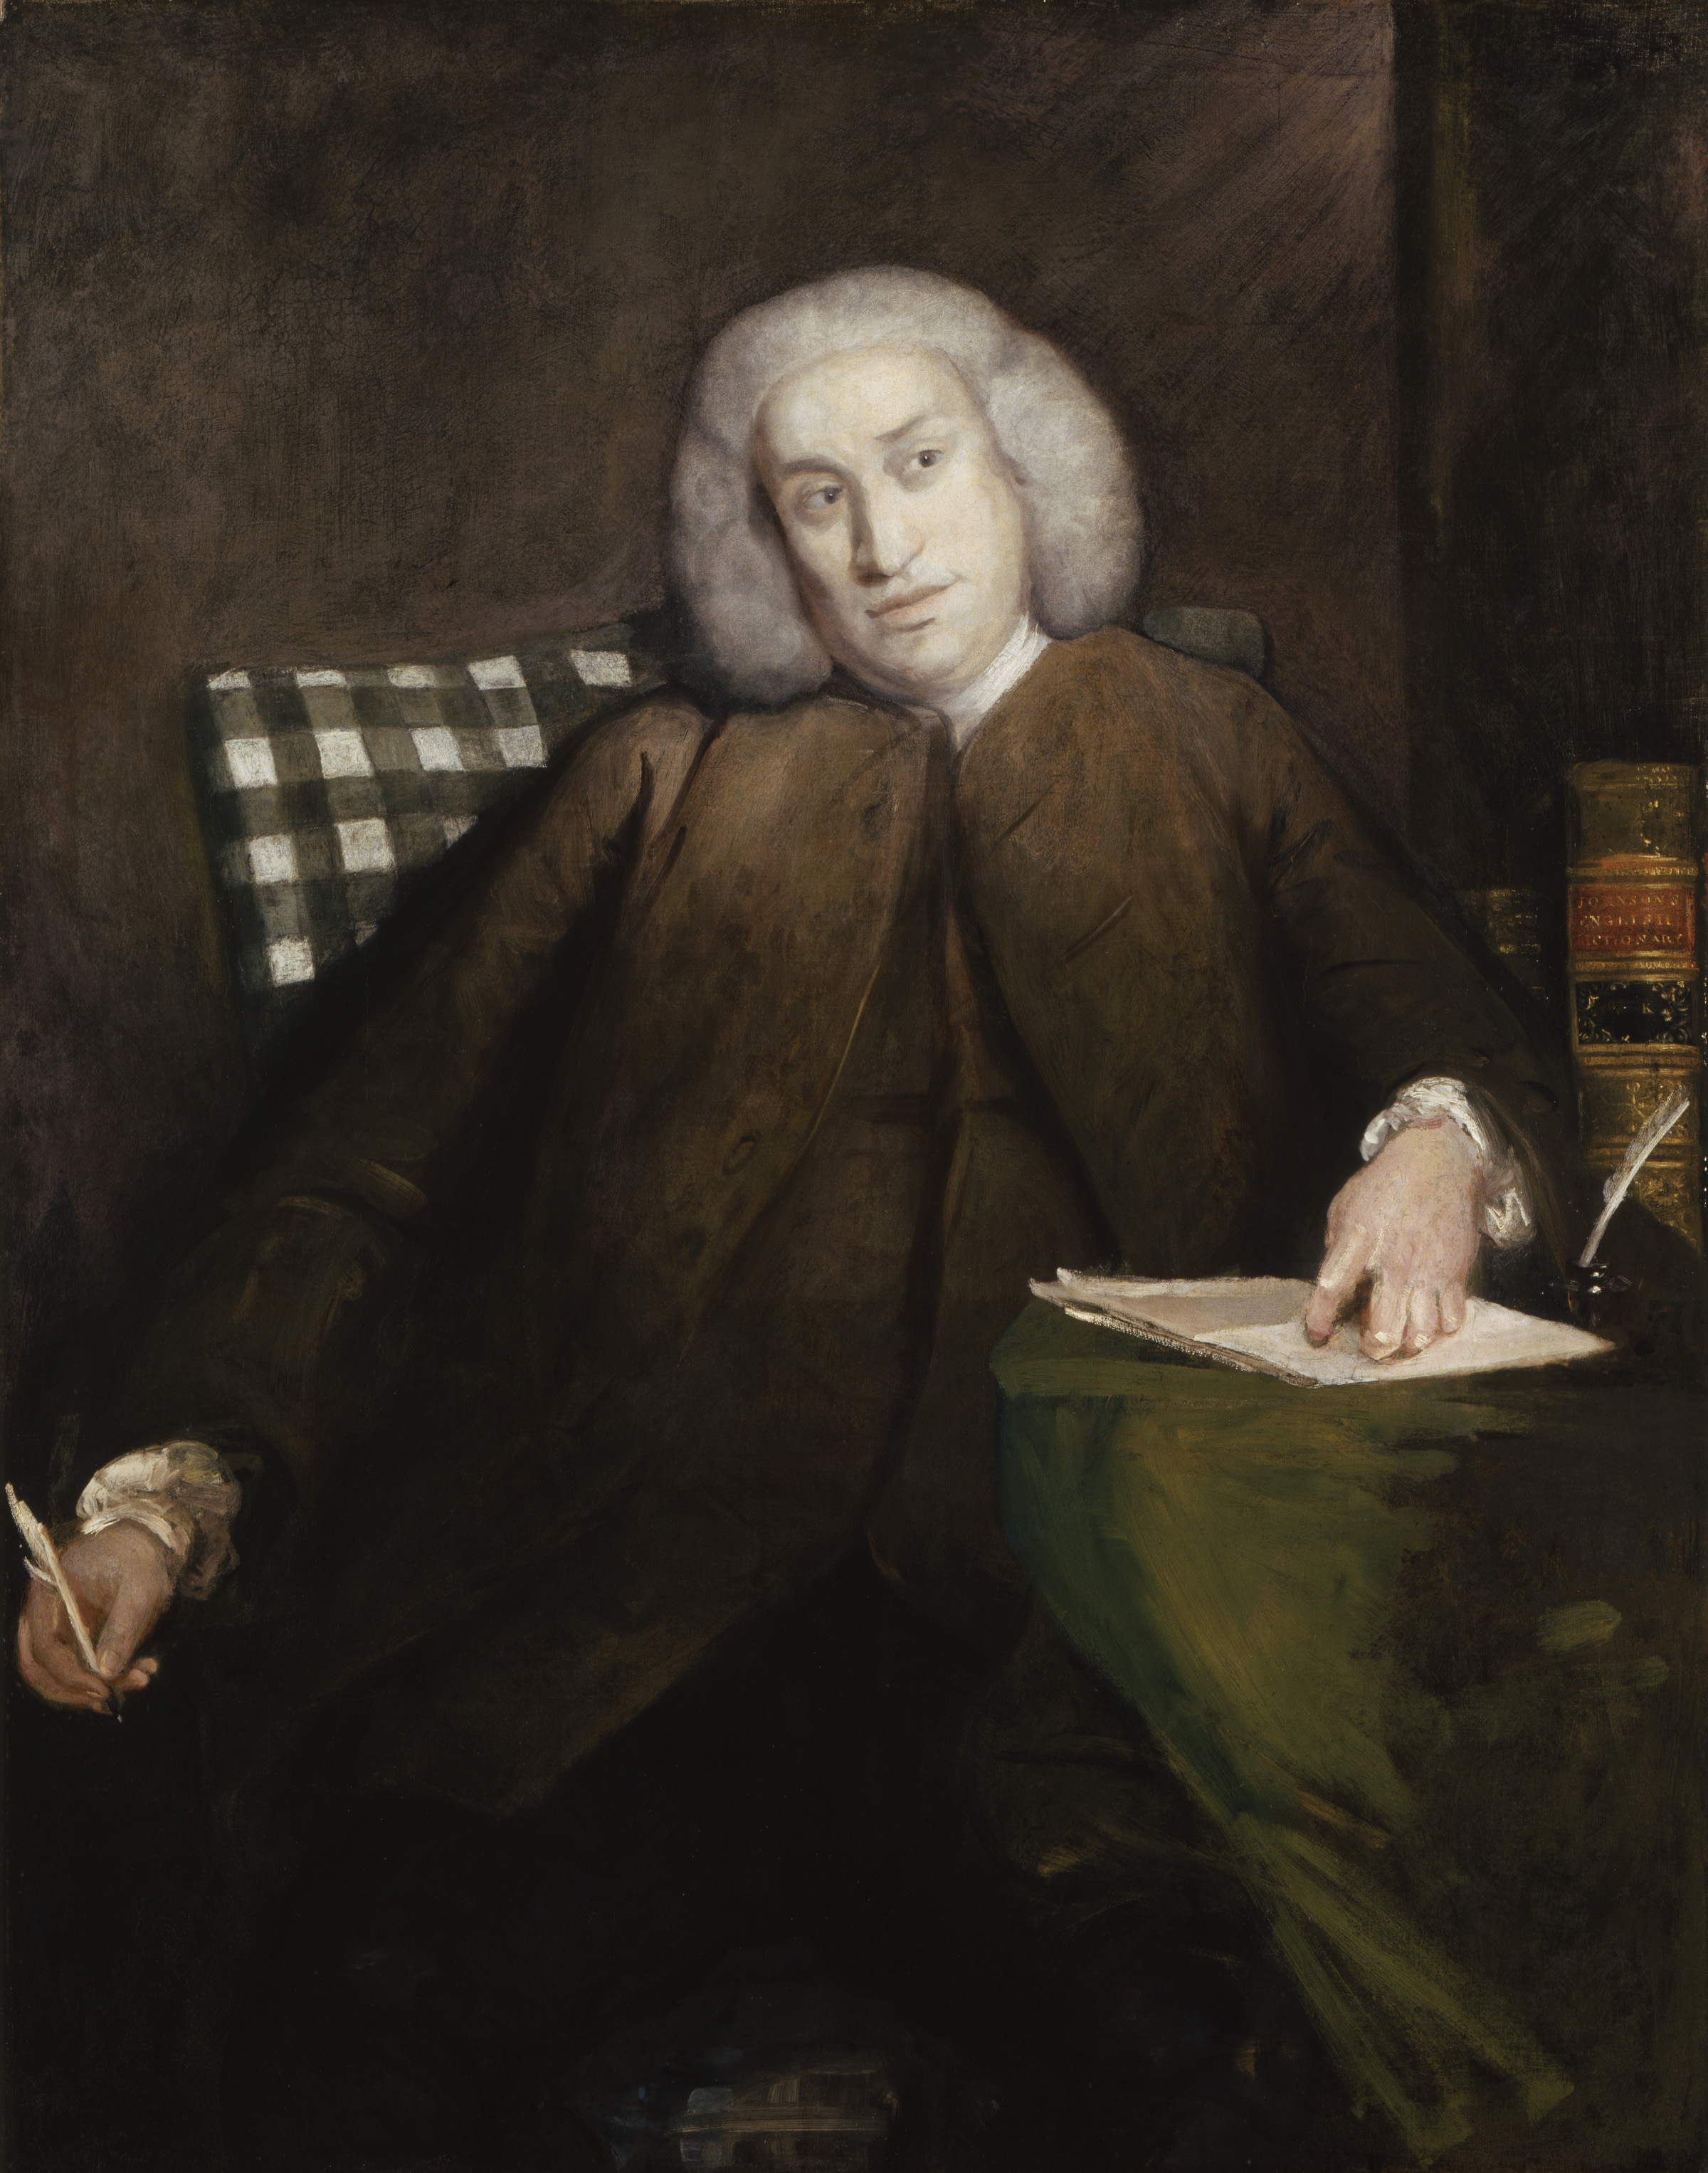 Image Credit: Samuel Johnson by Sir Joshua Reynolds, c.1756 © National Portrait Gallery, London